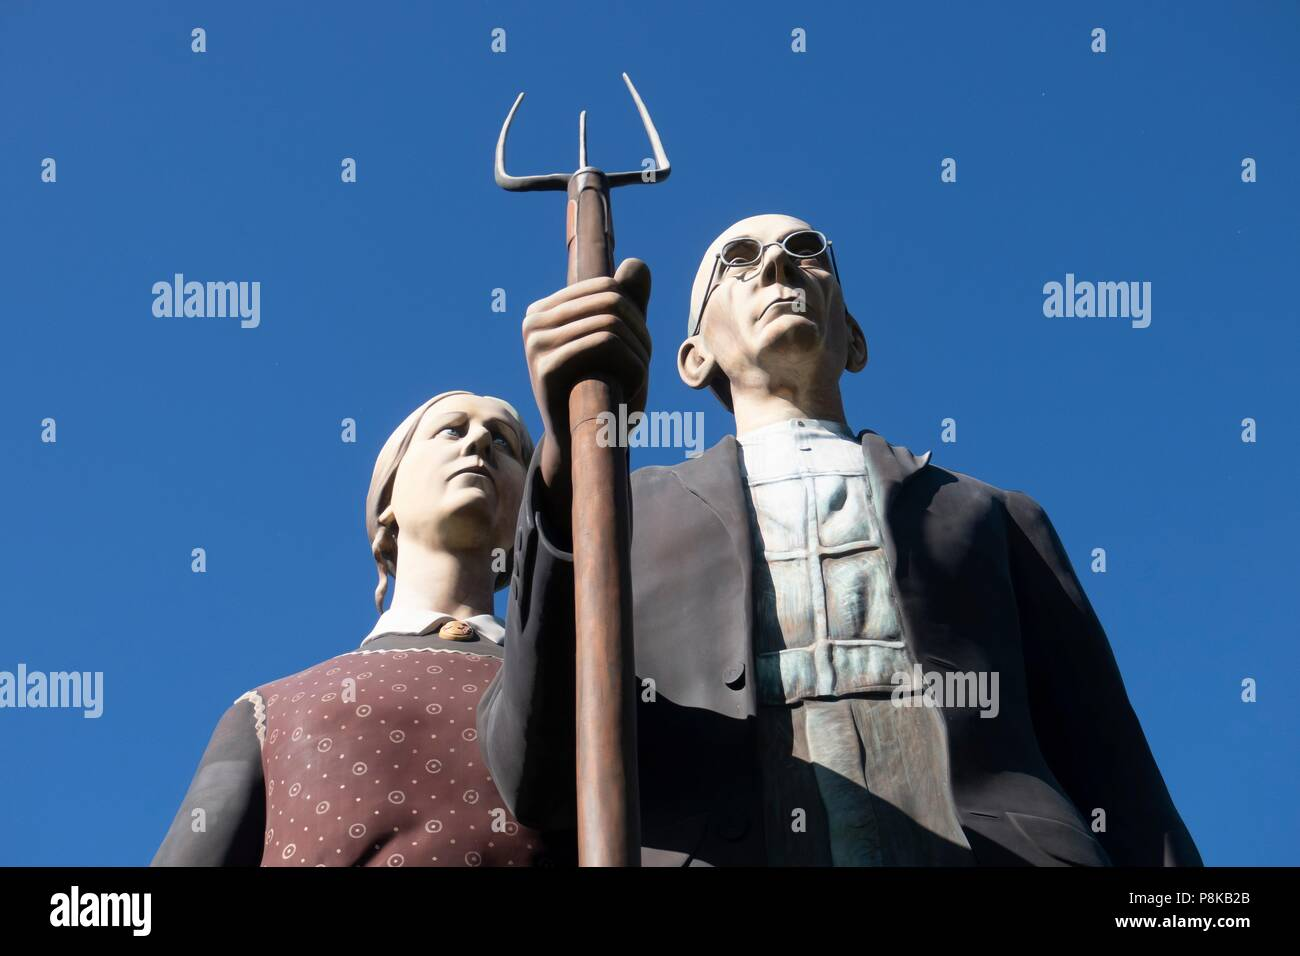 Seward Johnson's 25 foot statue 'God Bless America' in Elkhart Indiana's Central Park is a 3-dimensional re-creation of the iconic painting 'American  - Stock Image